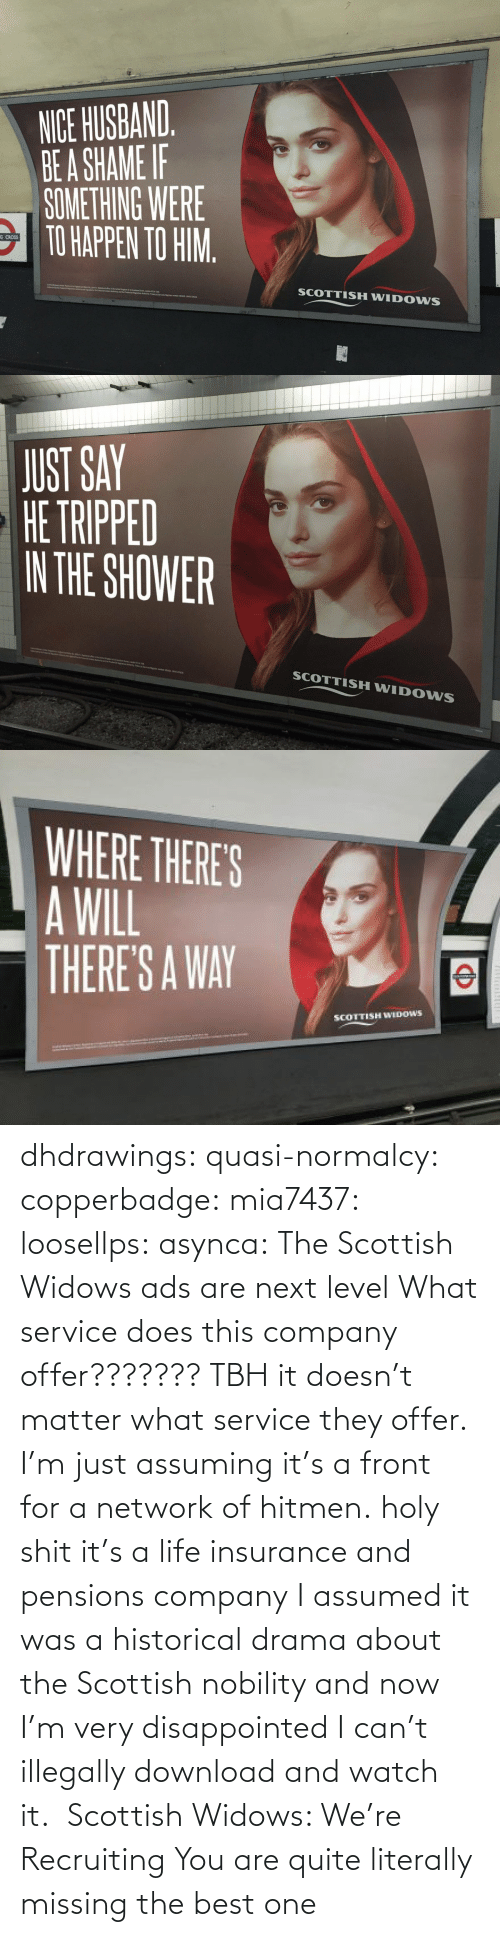 org: dhdrawings:  quasi-normalcy:  copperbadge:  mia7437:  loosellps:  asynca: The Scottish Widows ads are next level What service does this company offer??????? TBH it doesn't matter what service they offer. I'm just assuming it's a front for a network of hitmen.  holy shit it's a life insurance and pensions company  I assumed it was a historical drama about the Scottish nobility and now I'm very disappointed I can't illegally download and watch it.     Scottish Widows: We're Recruiting    You are quite literally missing the best one